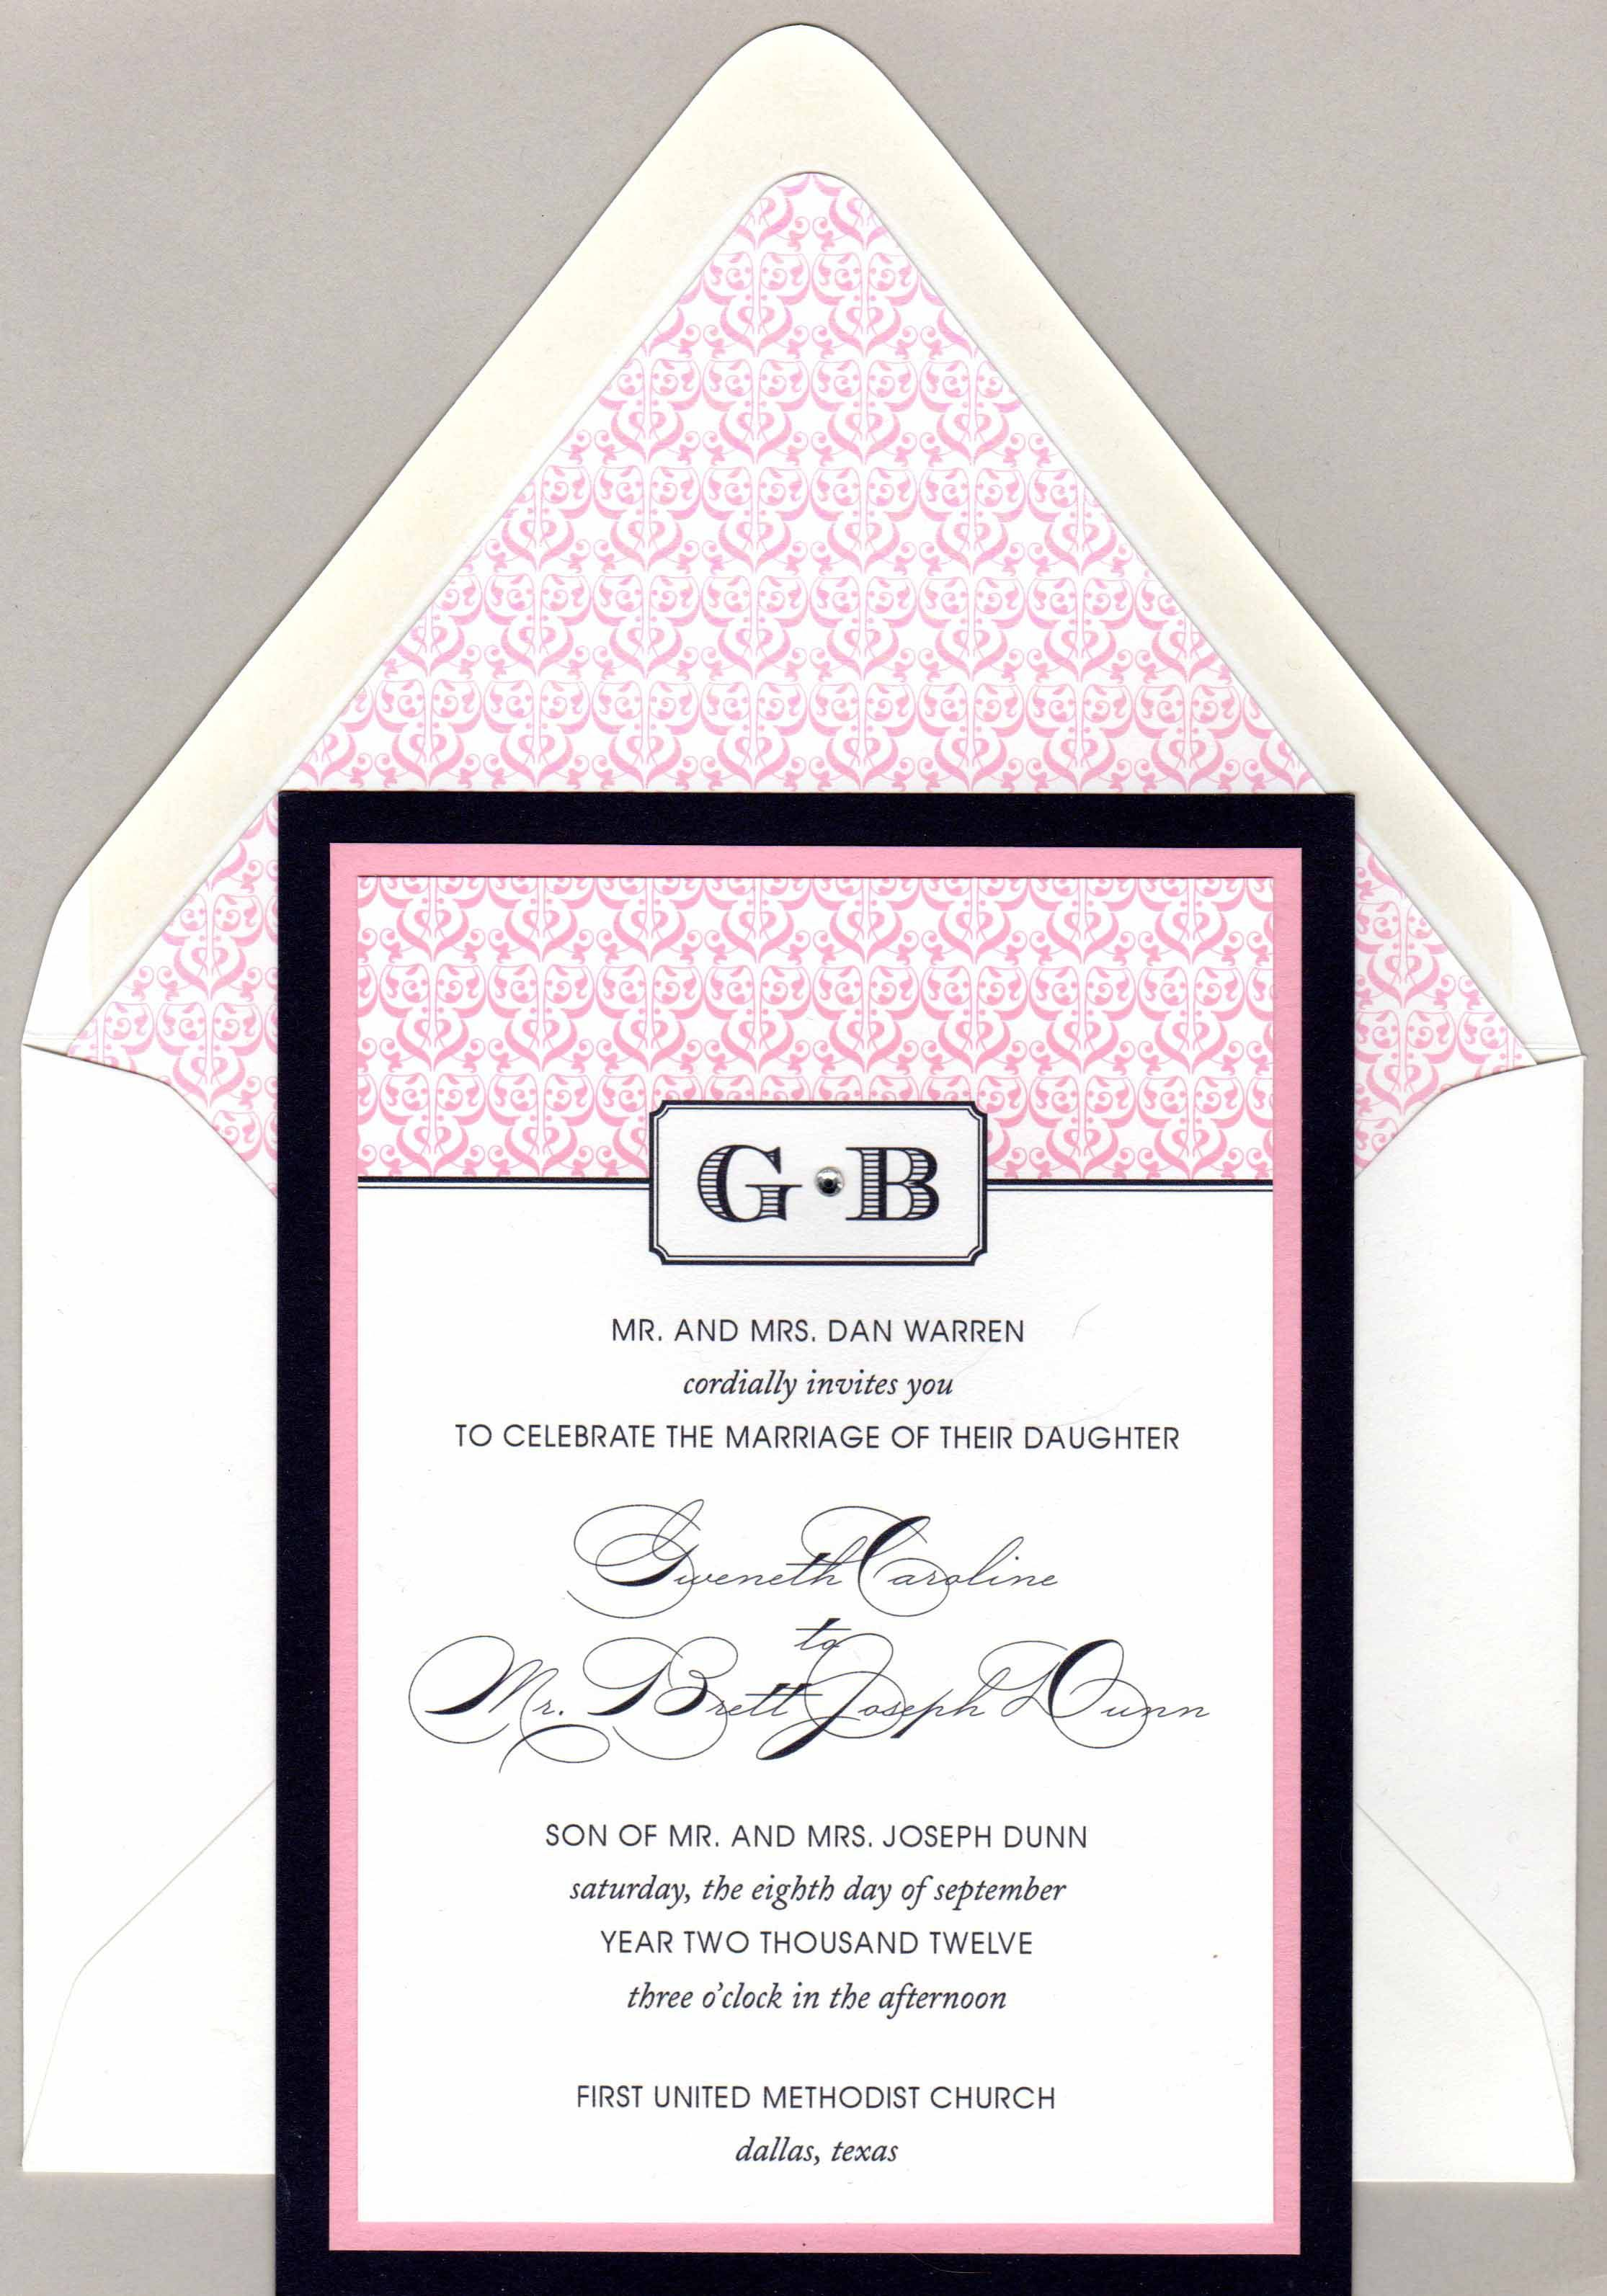 Ella wedding invitation from the bt elements Pure collection ...